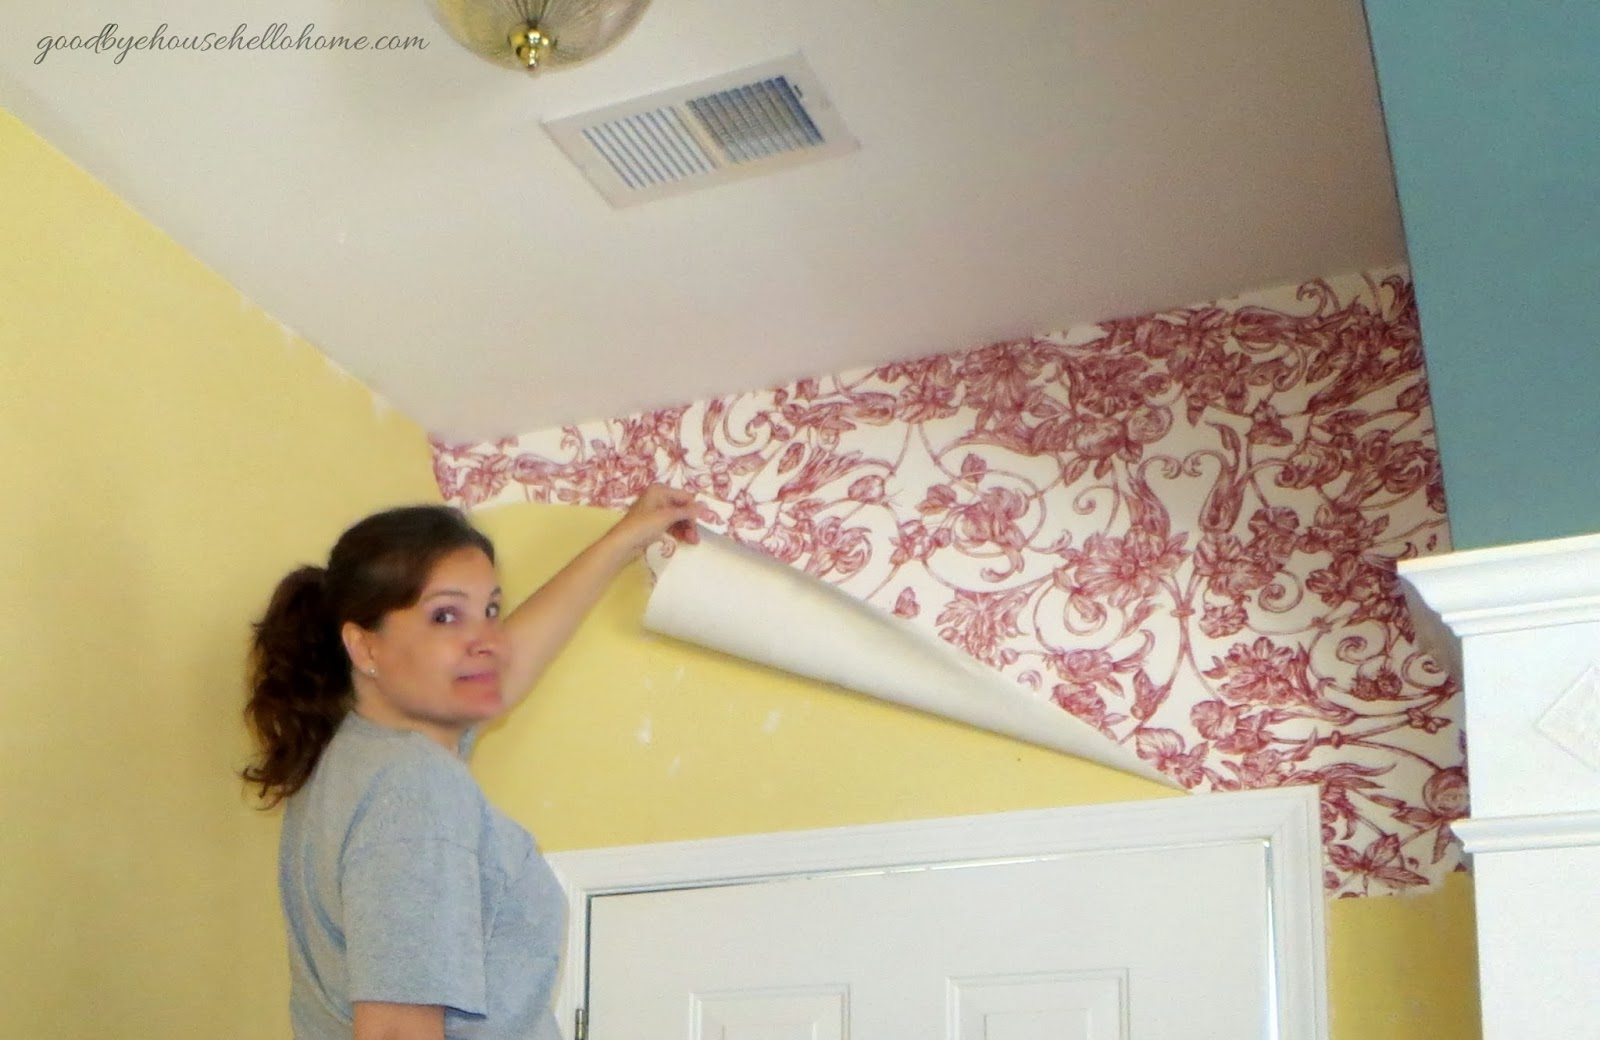 Goodbye house hello home blog january 2014 for Home wallpaper removal tips